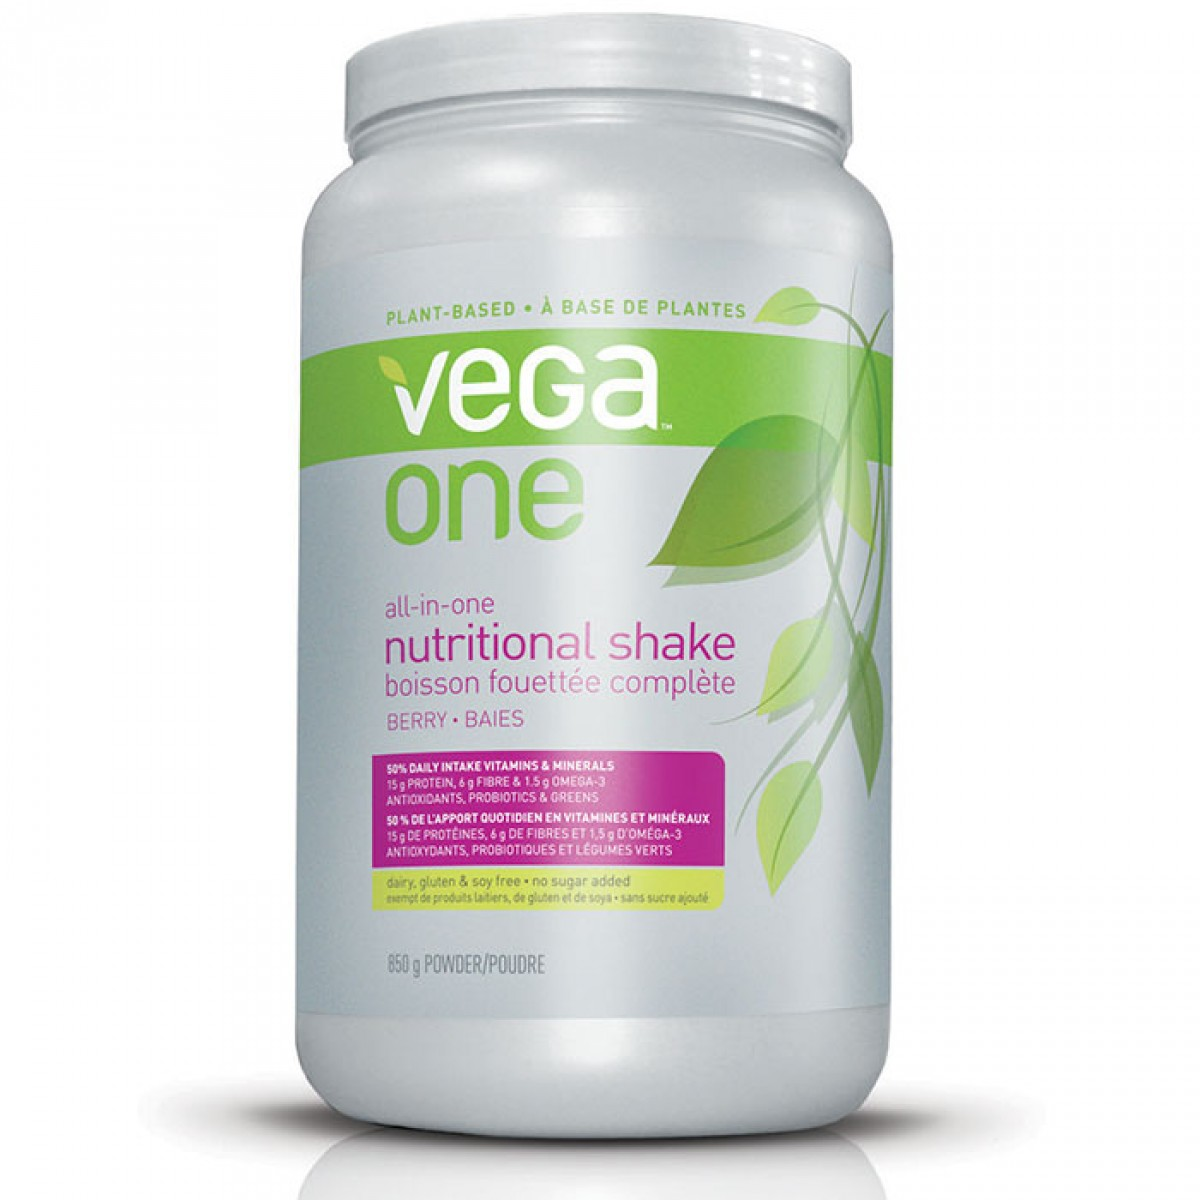 Vega One All-in-One Nutritional Shake Mixed Berry 850g Powder